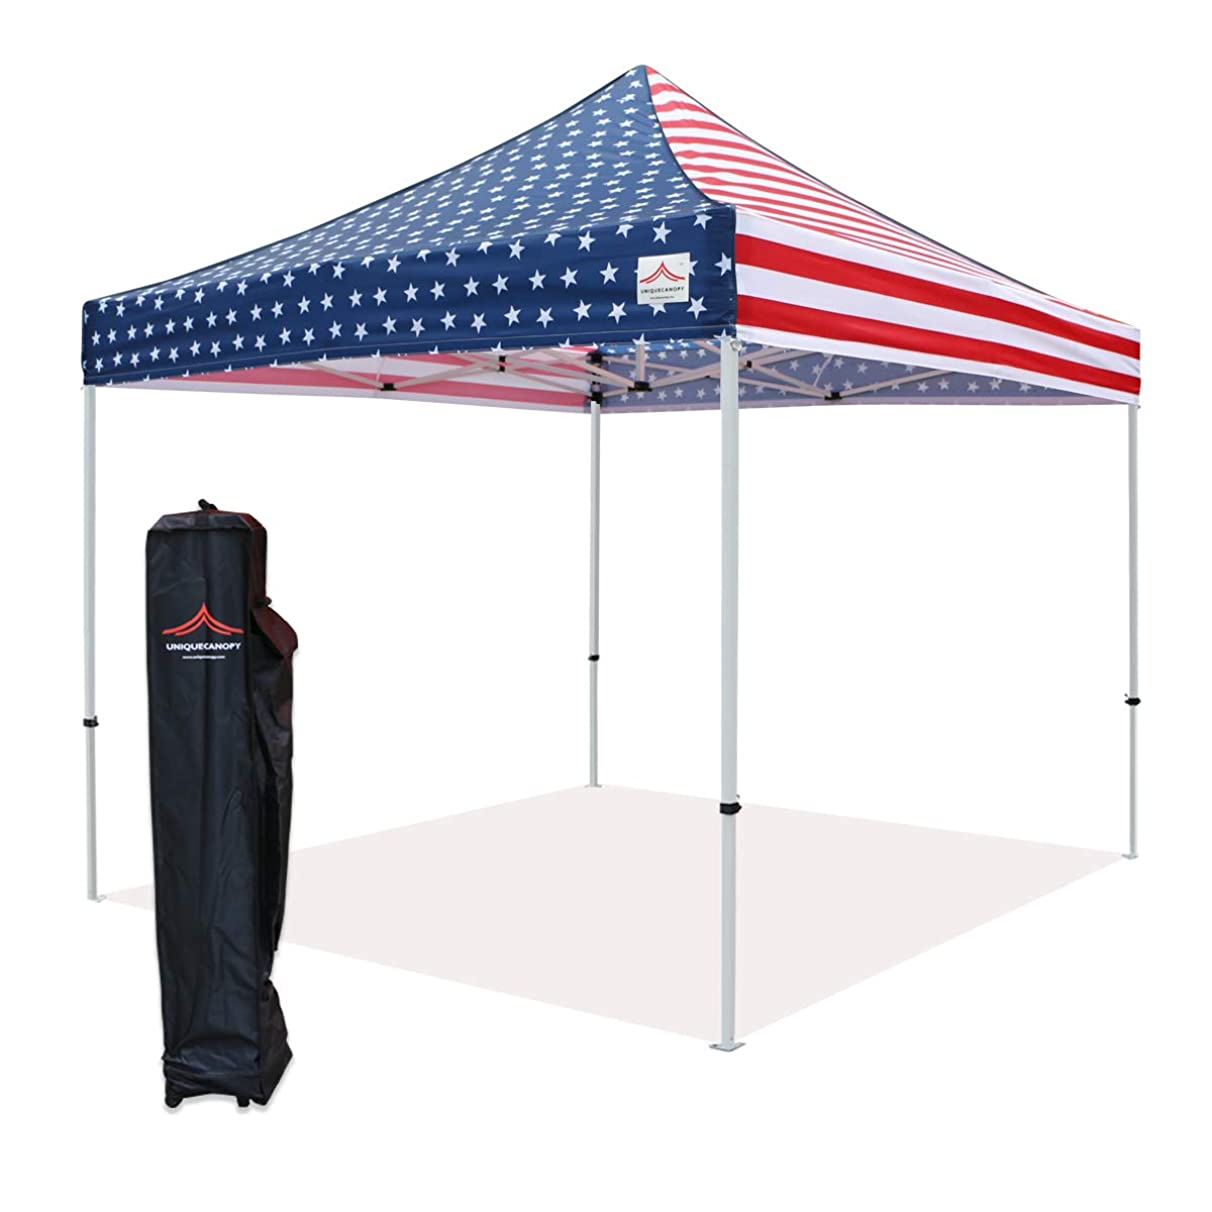 UNIQUECANOPY 10x10 Ez Pop up Canopy Tents for Parties Outdoor Portable Instant Folded Commercial Popup Shelter, with Wheeled Carrying Bag Flag